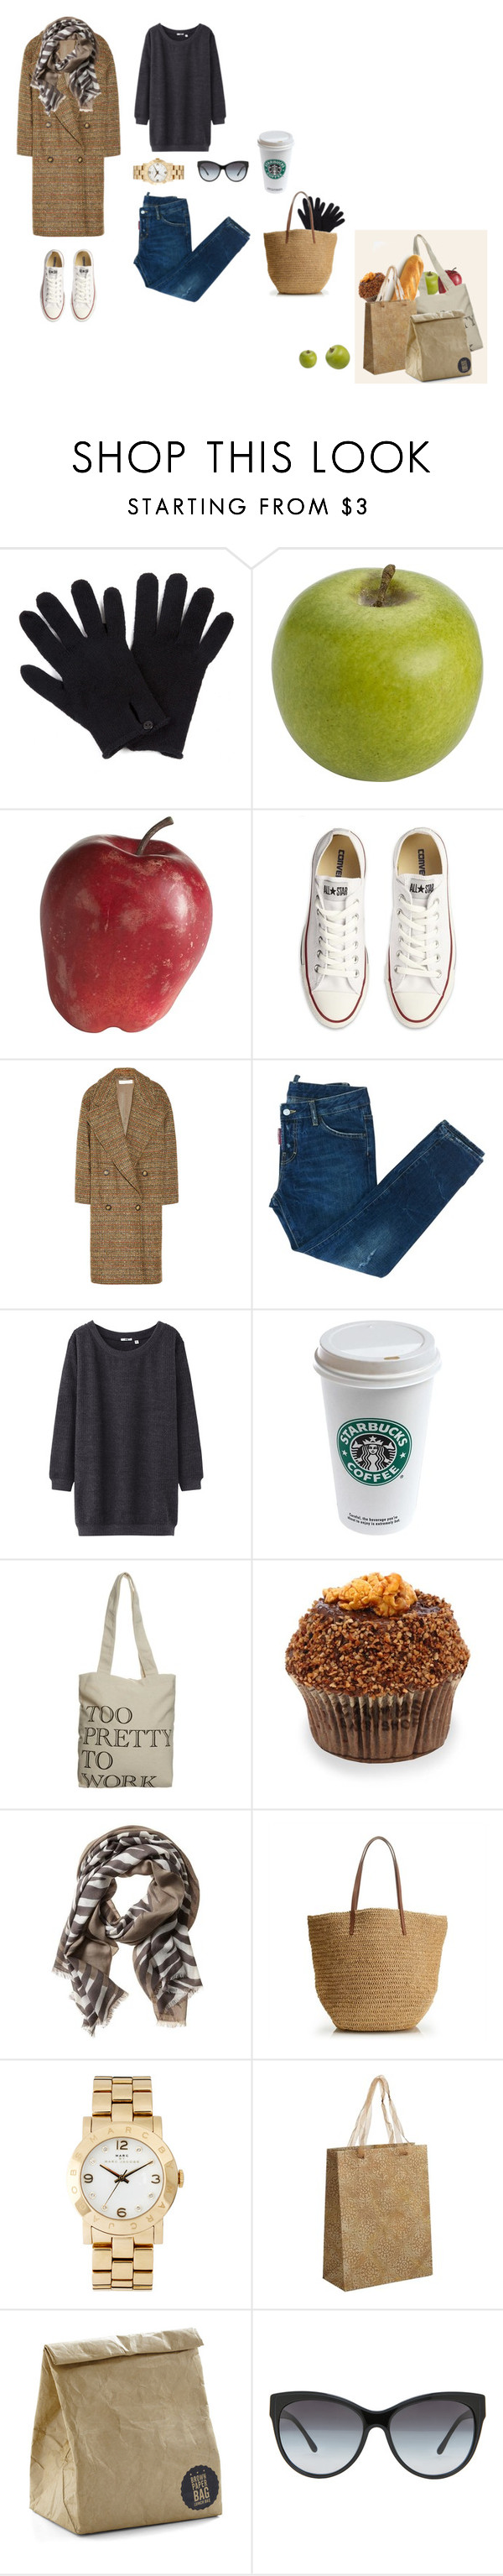 """""""weekend shopping"""" by victoria-izhboldina ❤ liked on Polyvore featuring Jigsaw, Pier 1 Imports, Converse, STELLA McCARTNEY, Dsquared2, Uniqlo, Souve, Banana Republic, J.Crew and Marc by Marc Jacobs"""